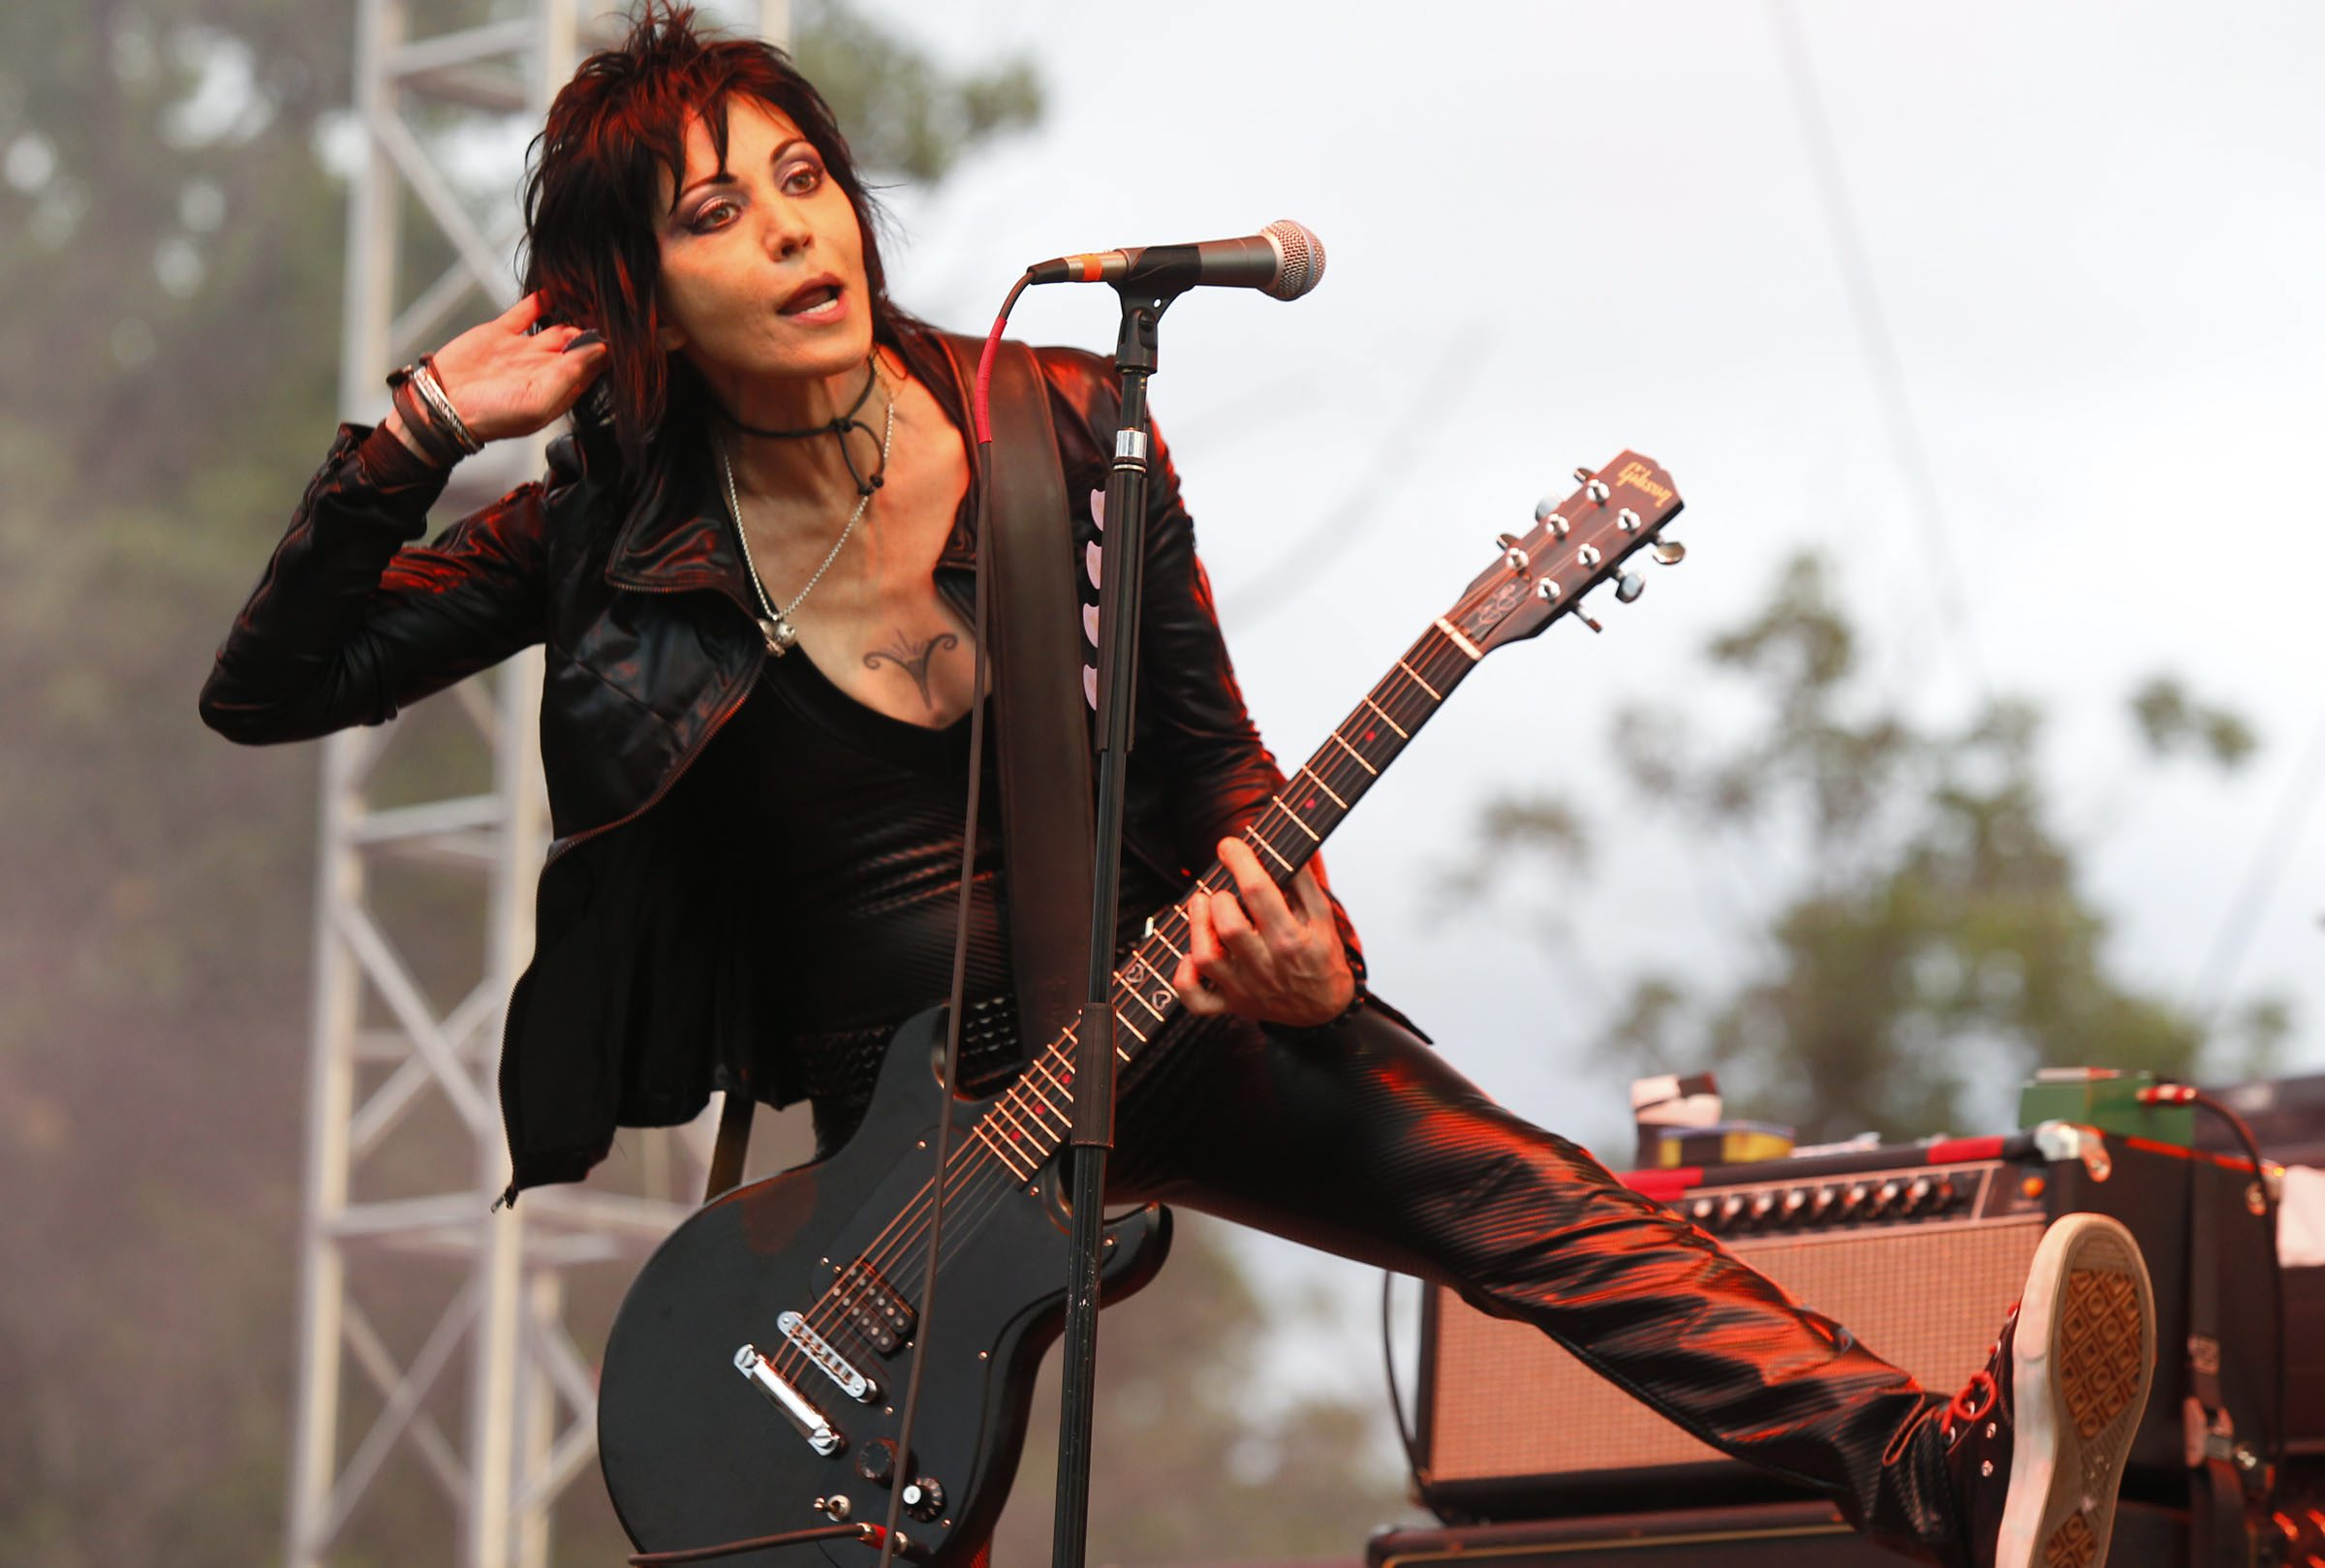 Joan Jett will perform at the Darien Lake Performing Arts Center as part of the 'Rock Hall Three for All.' (Photo by Harry Scull Jr. / Buffalo News file photo)